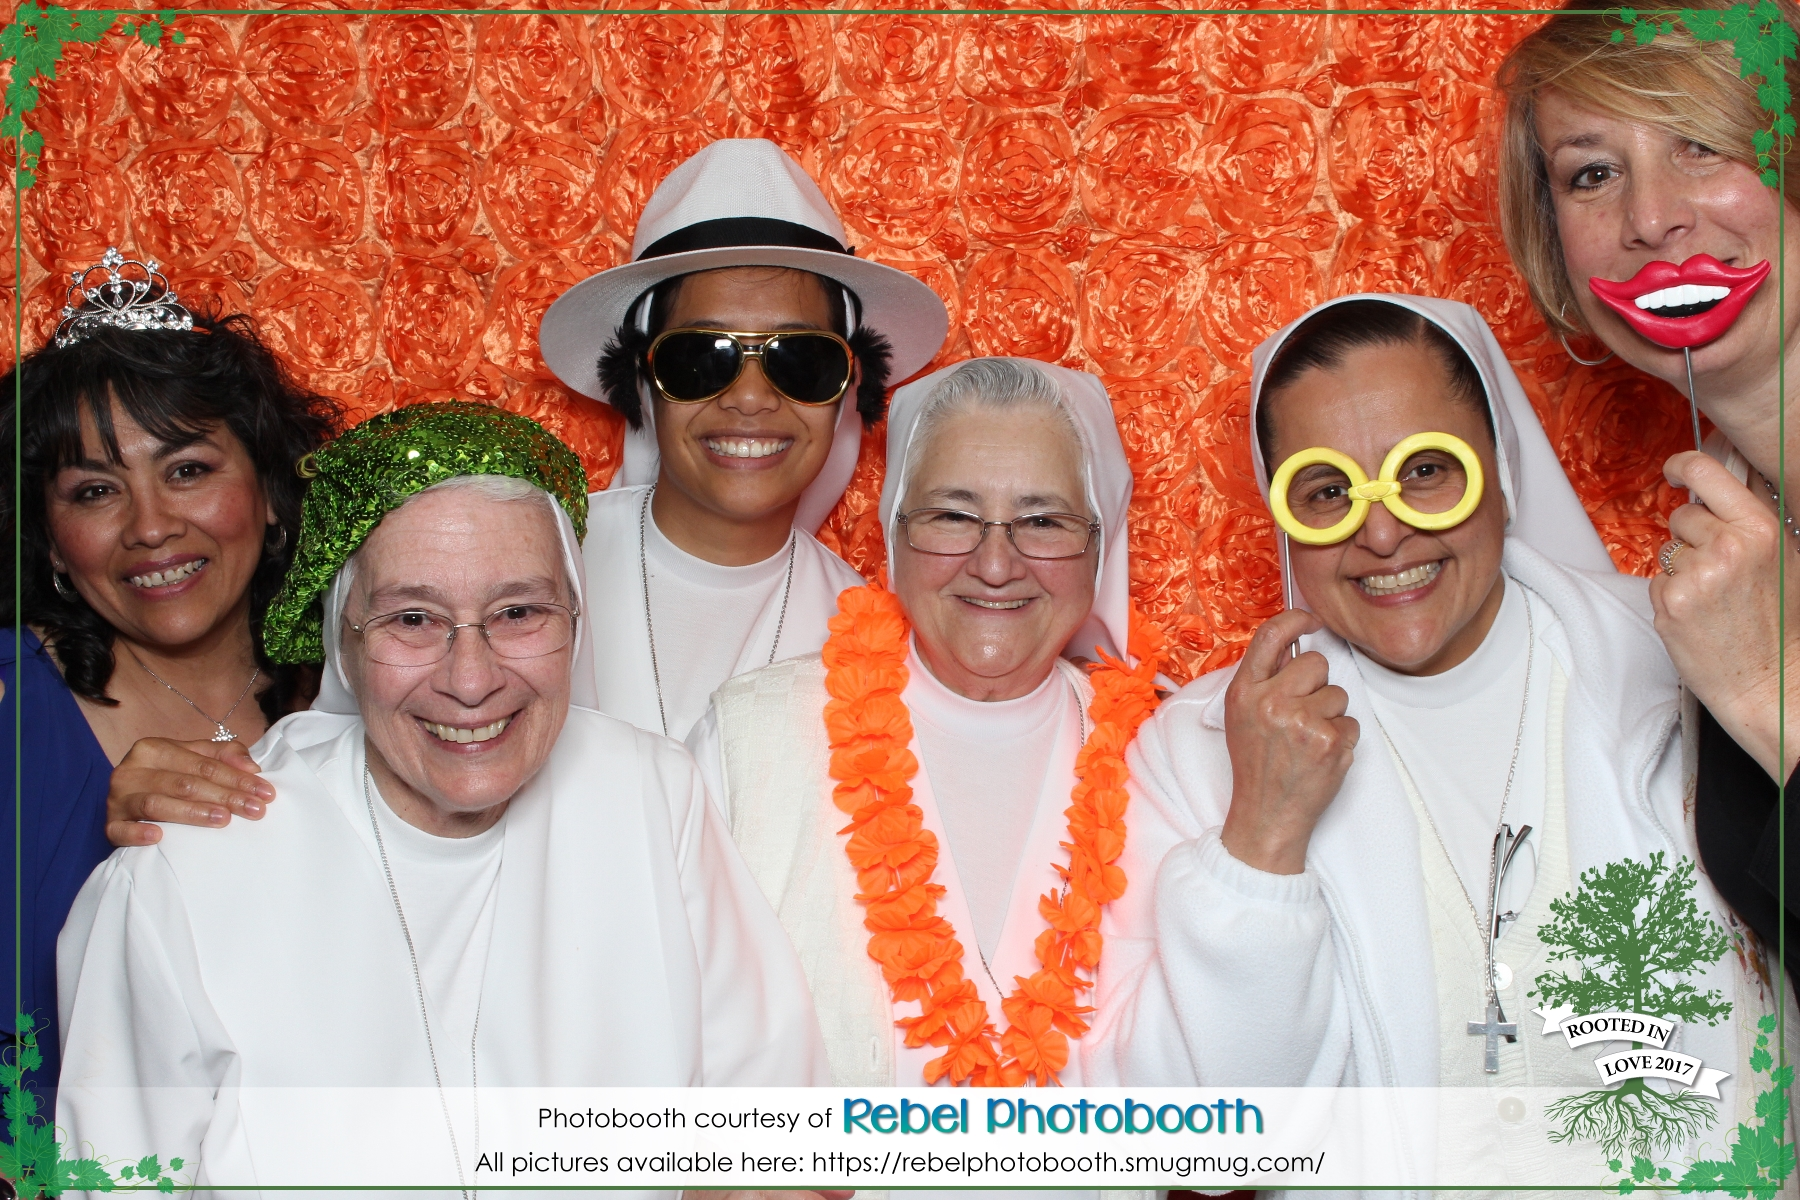 SIsters in the photobooth - a first for Rebel Photobooth